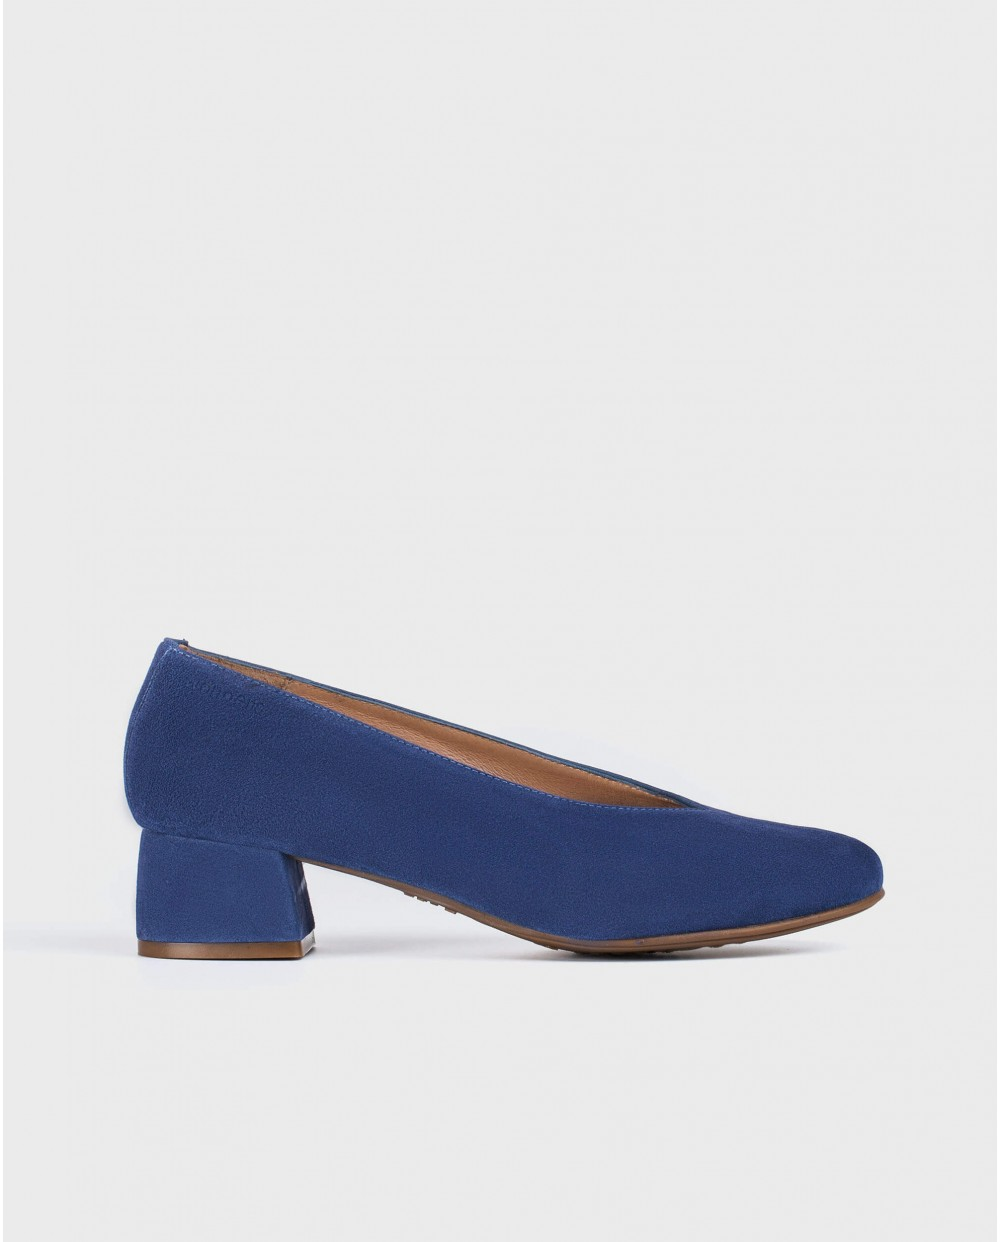 Wonders-Heels-Court shoe with midi-heeled